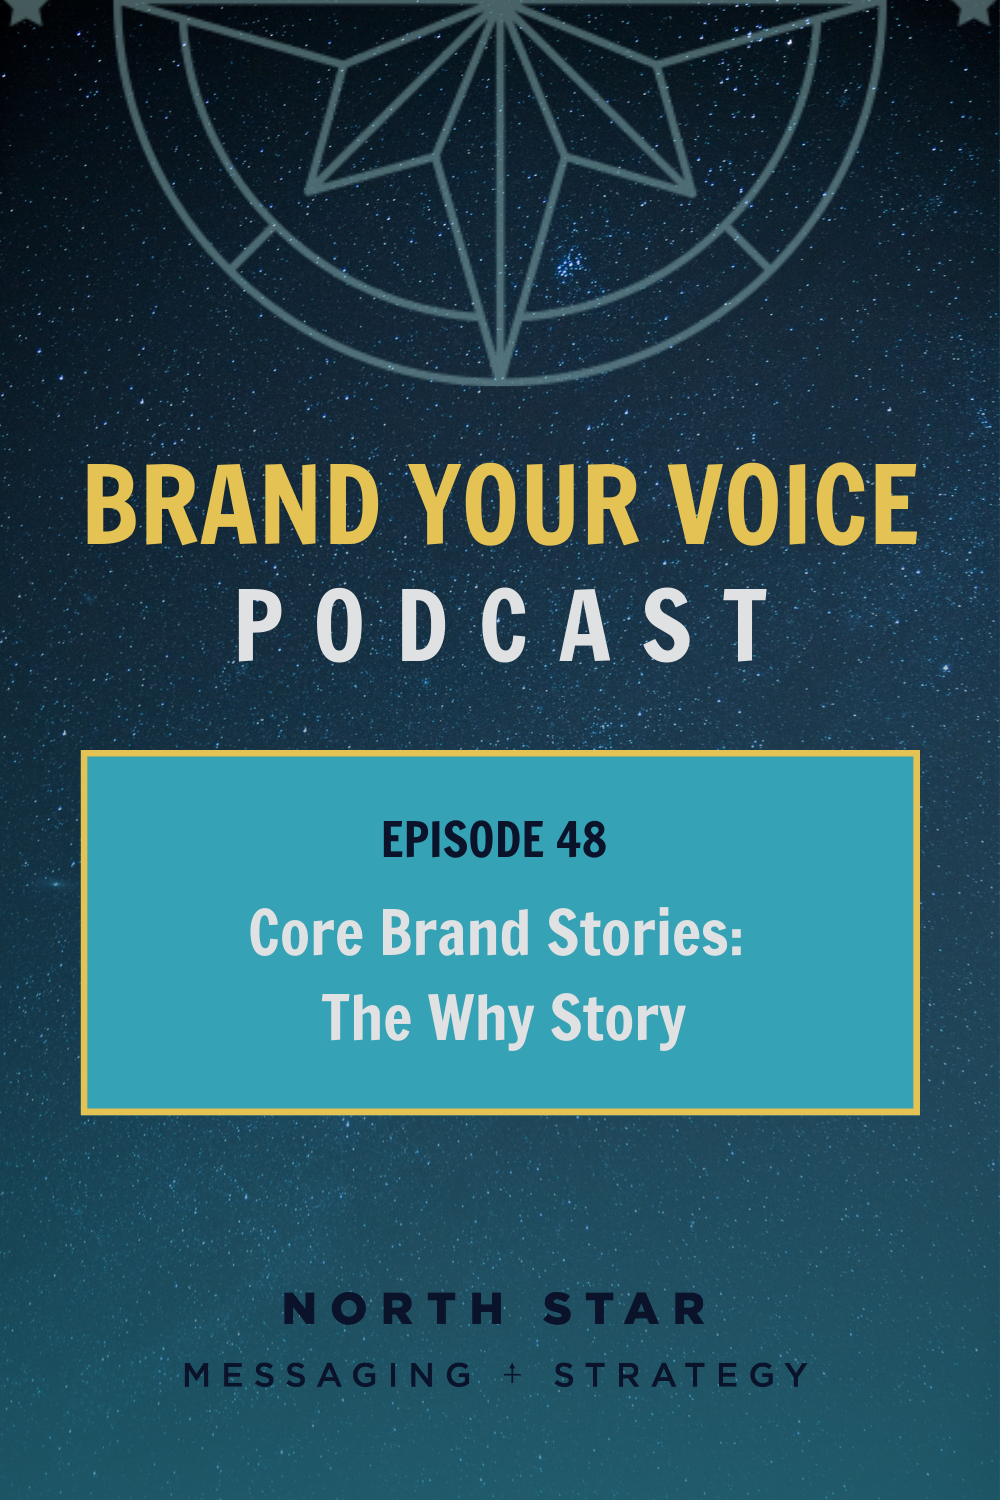 EPISODE 48: Core Brand Stories: The Why Story